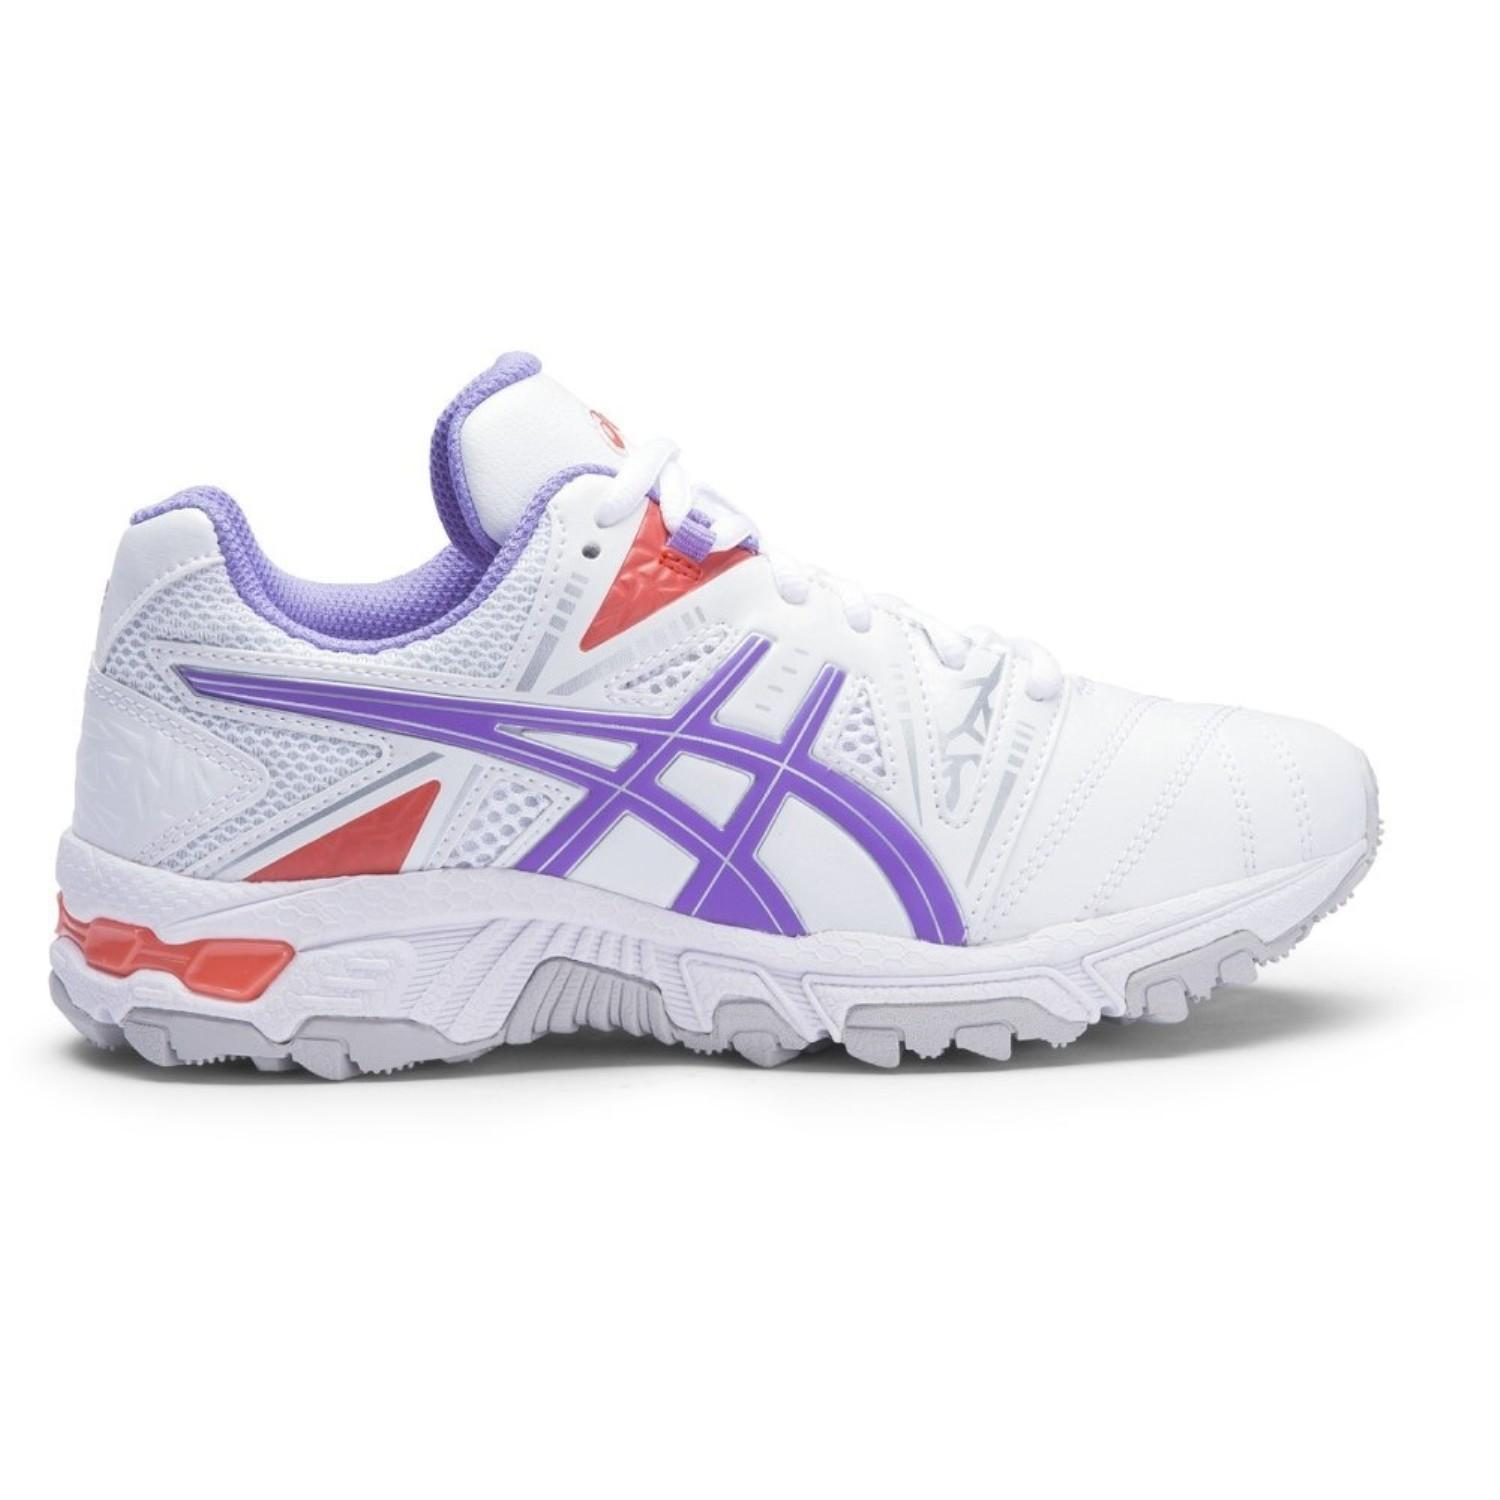 Asics Gel-Trigger 10 PS Girls Cross Training Shoes: White/Lagoon/Kylie |  Mike Pawley Sports